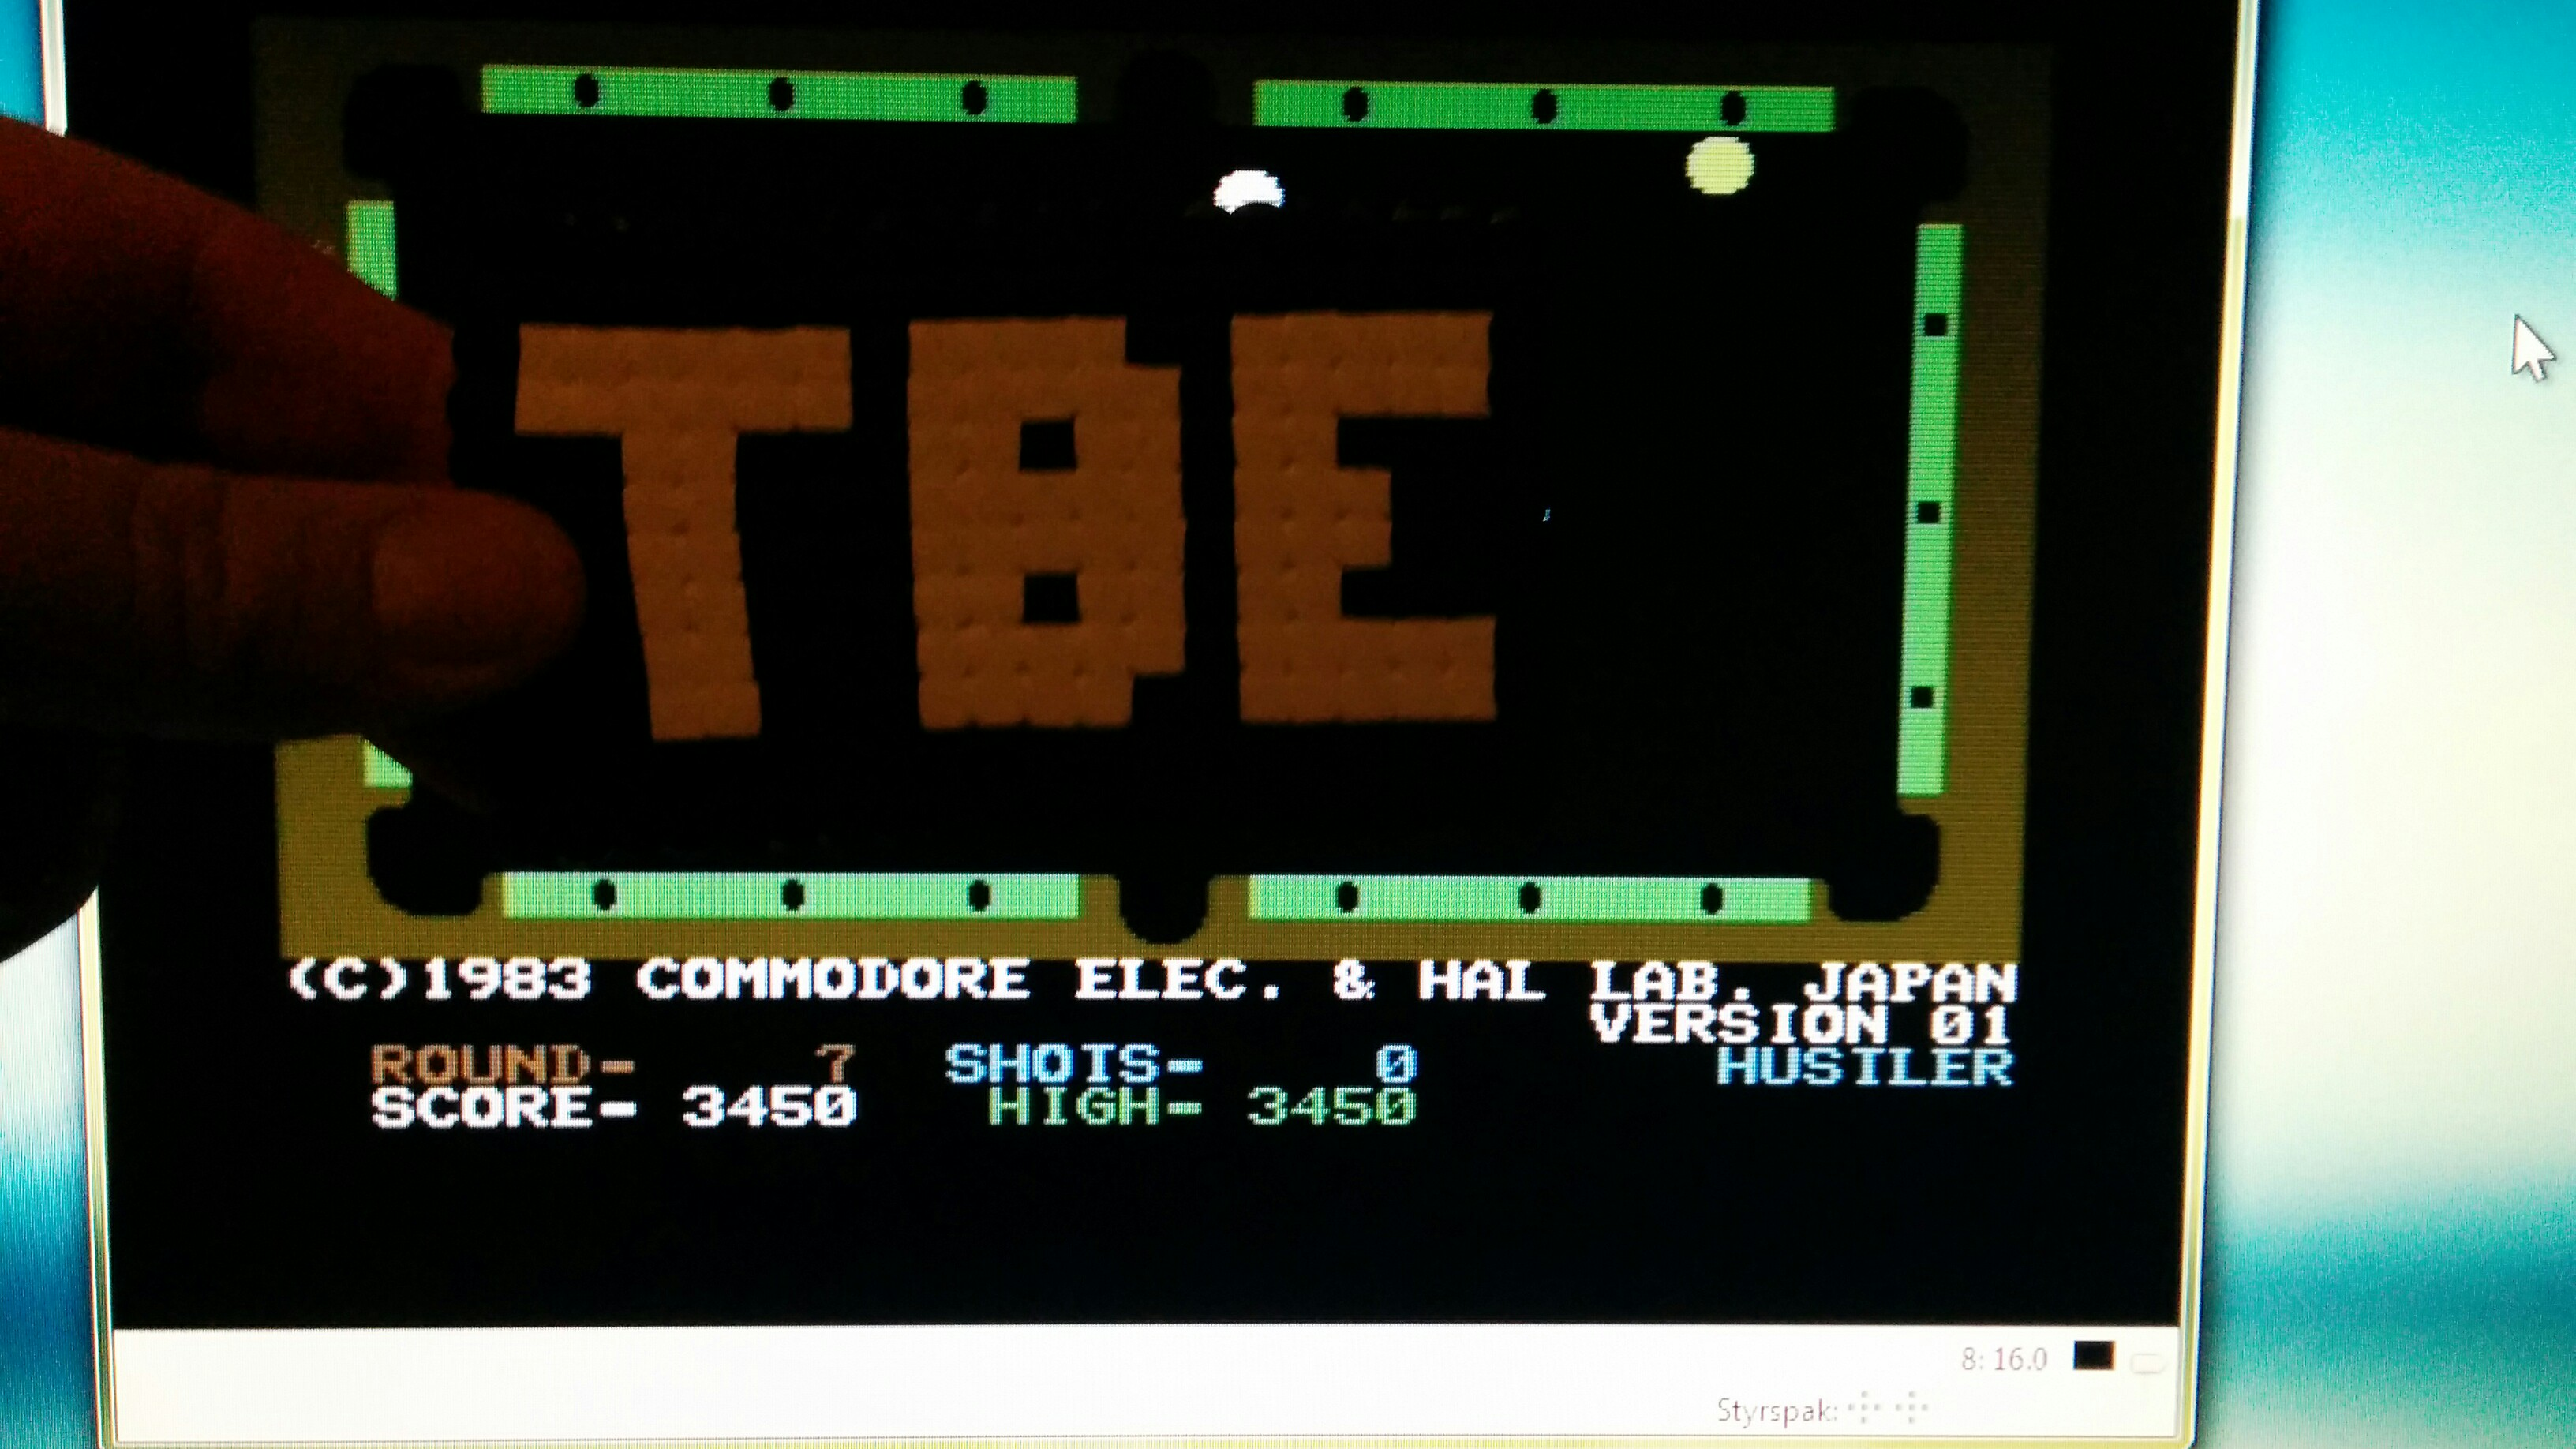 Sixx: Pool [Commodore]: Hustler (Commodore 64 Emulated) 3,450 points on 2014-09-20 16:28:06